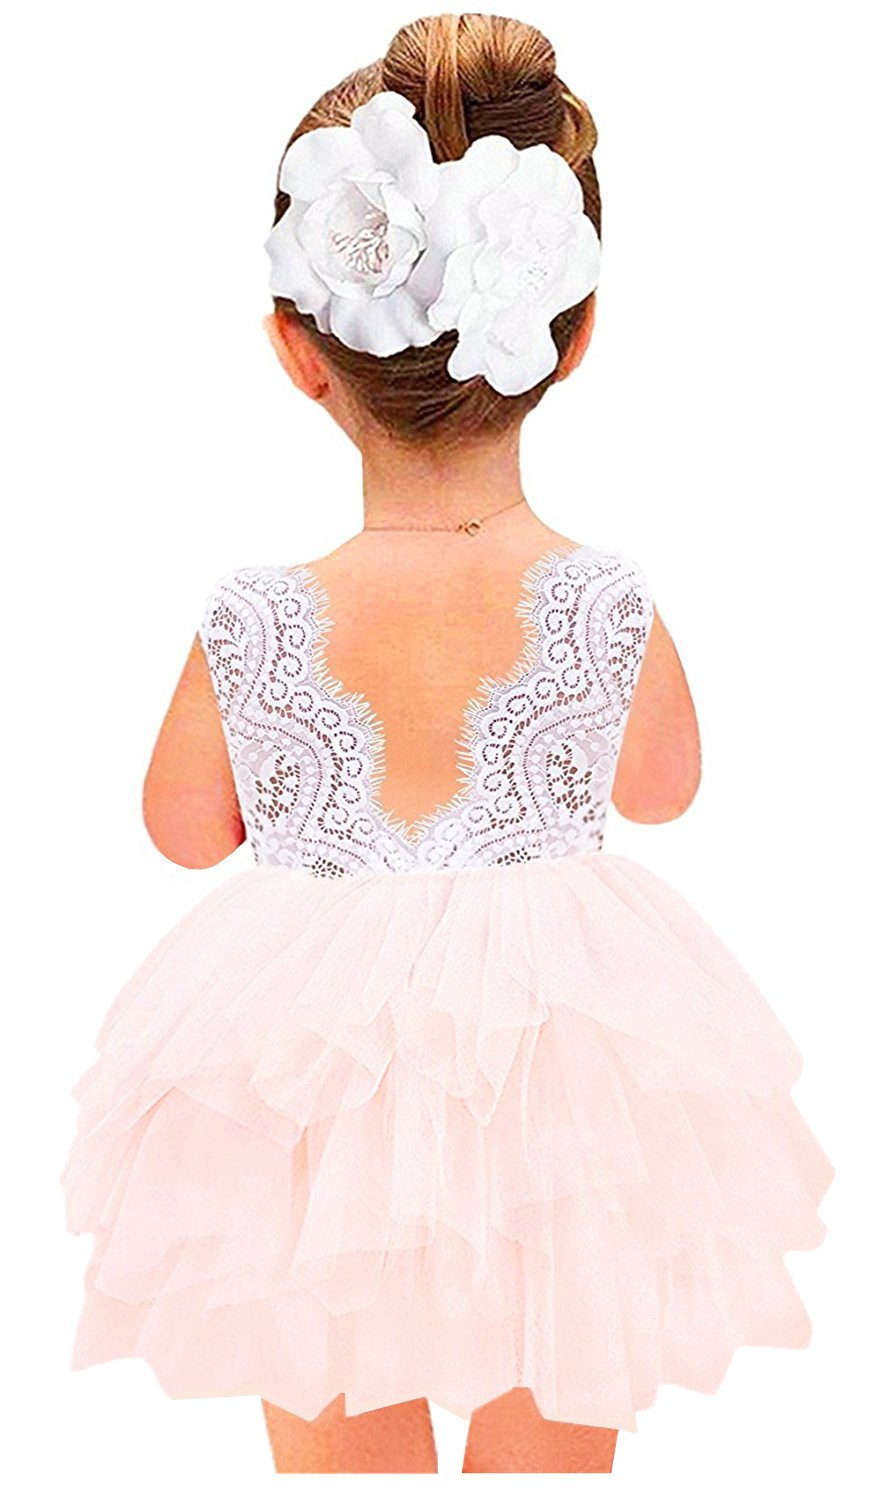 2Bunnies Girl Baby Girl Beaded Backless Lace Back Tutu Tulle Flower Girl Party Dress (Pink Sleeveless Short, 24M/2T)